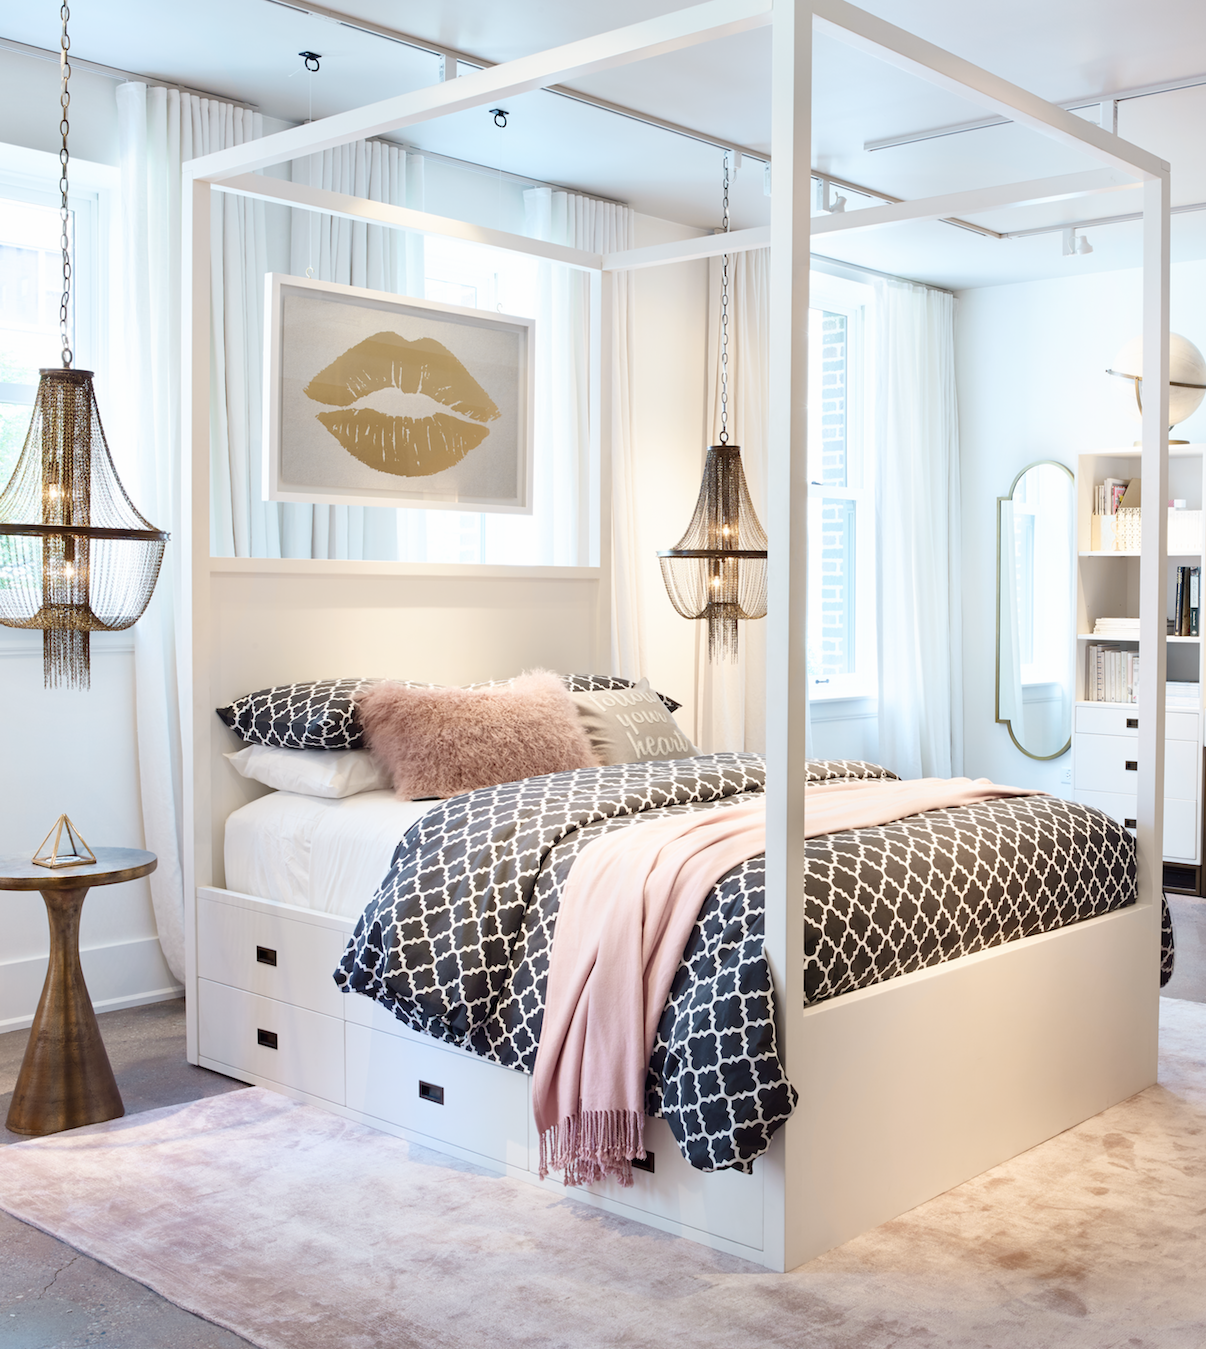 Rh chicago the gallery at the 3 arts club home sweet Teen girl bedroom ideas